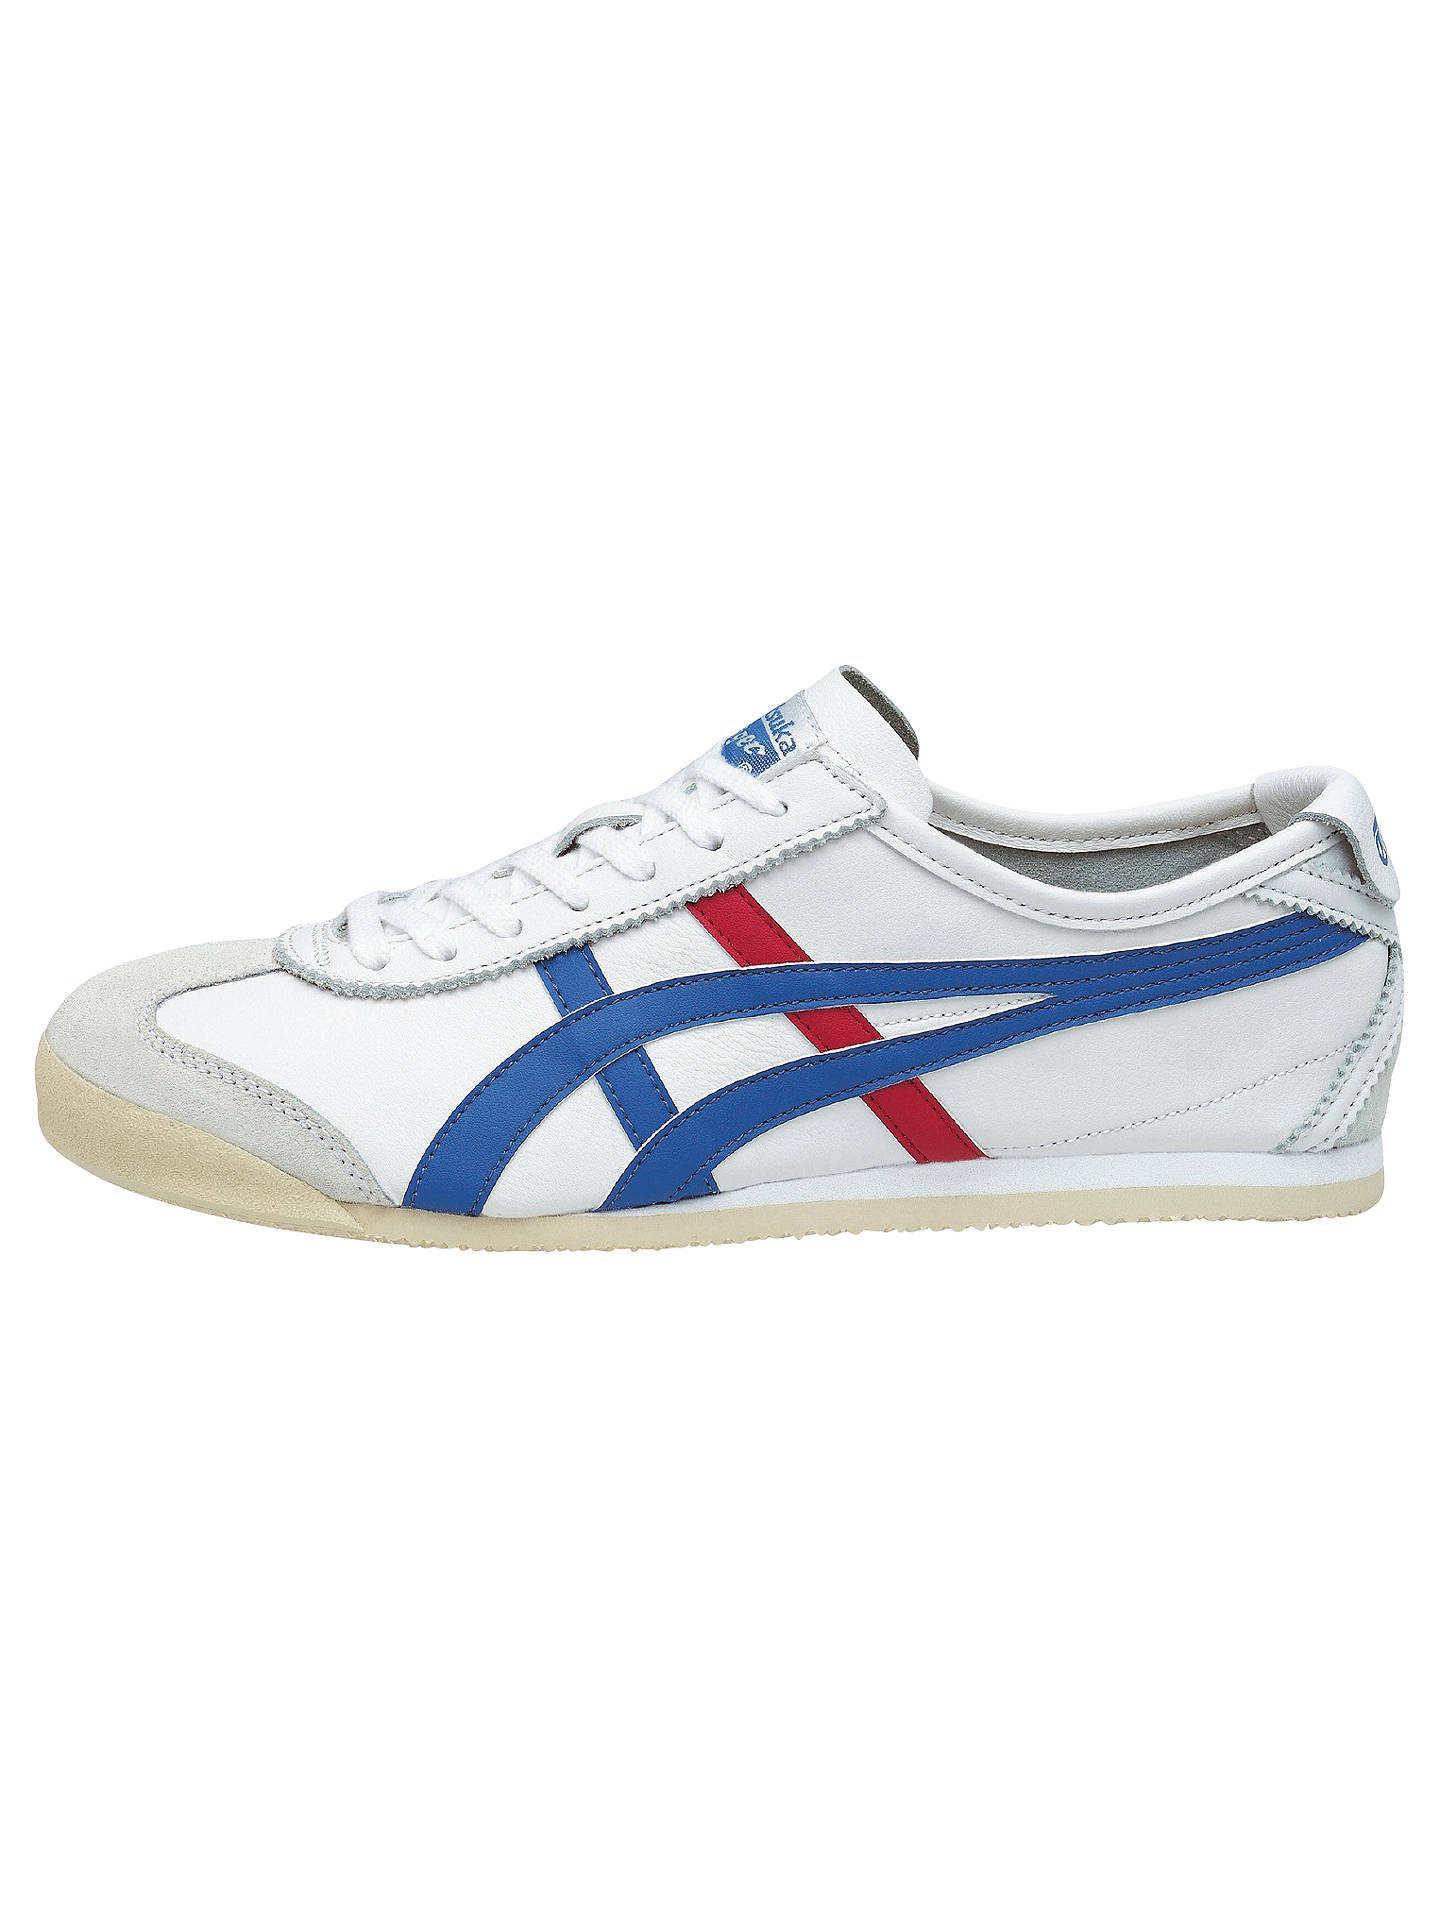 Onitsuka Tiger Mexico 66 Men S Trainers White Blue At John Lewis